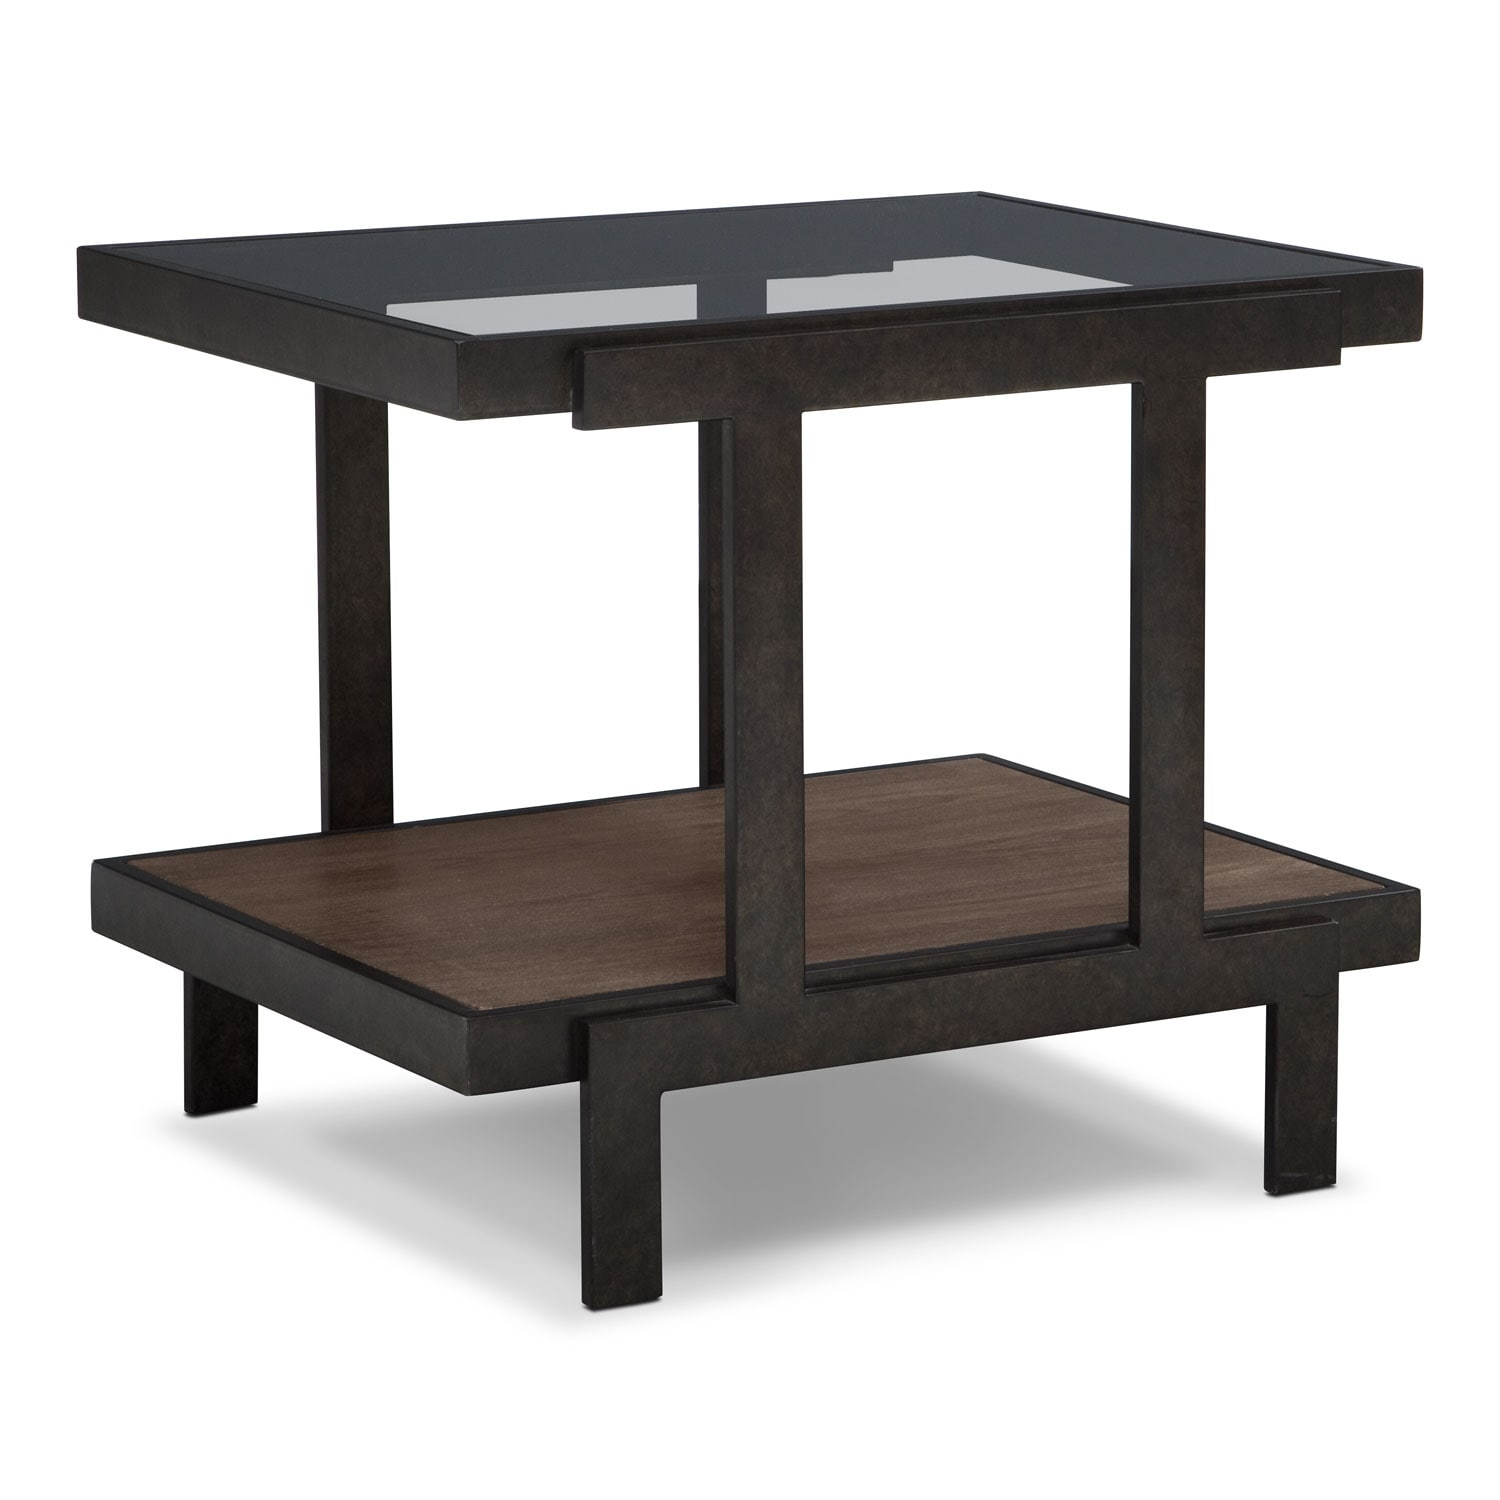 Beasley End Table - Espresso